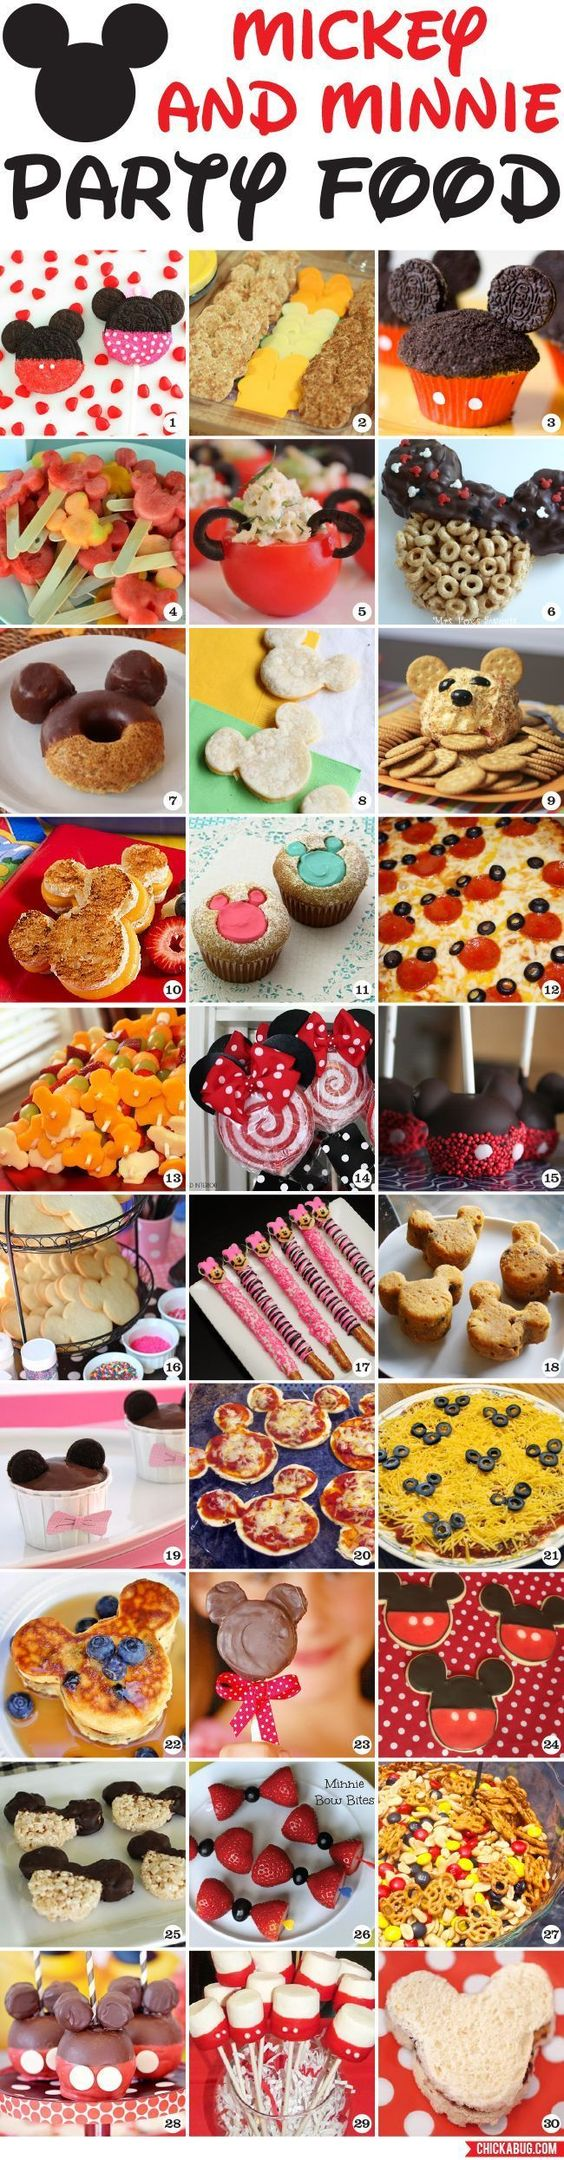 30 awesome Mickey Mouse and Minnie Mouse party food ideas!   Disney Party Ideas   Disney Party Theme   Disney Party Food   Disney Party Decorations  